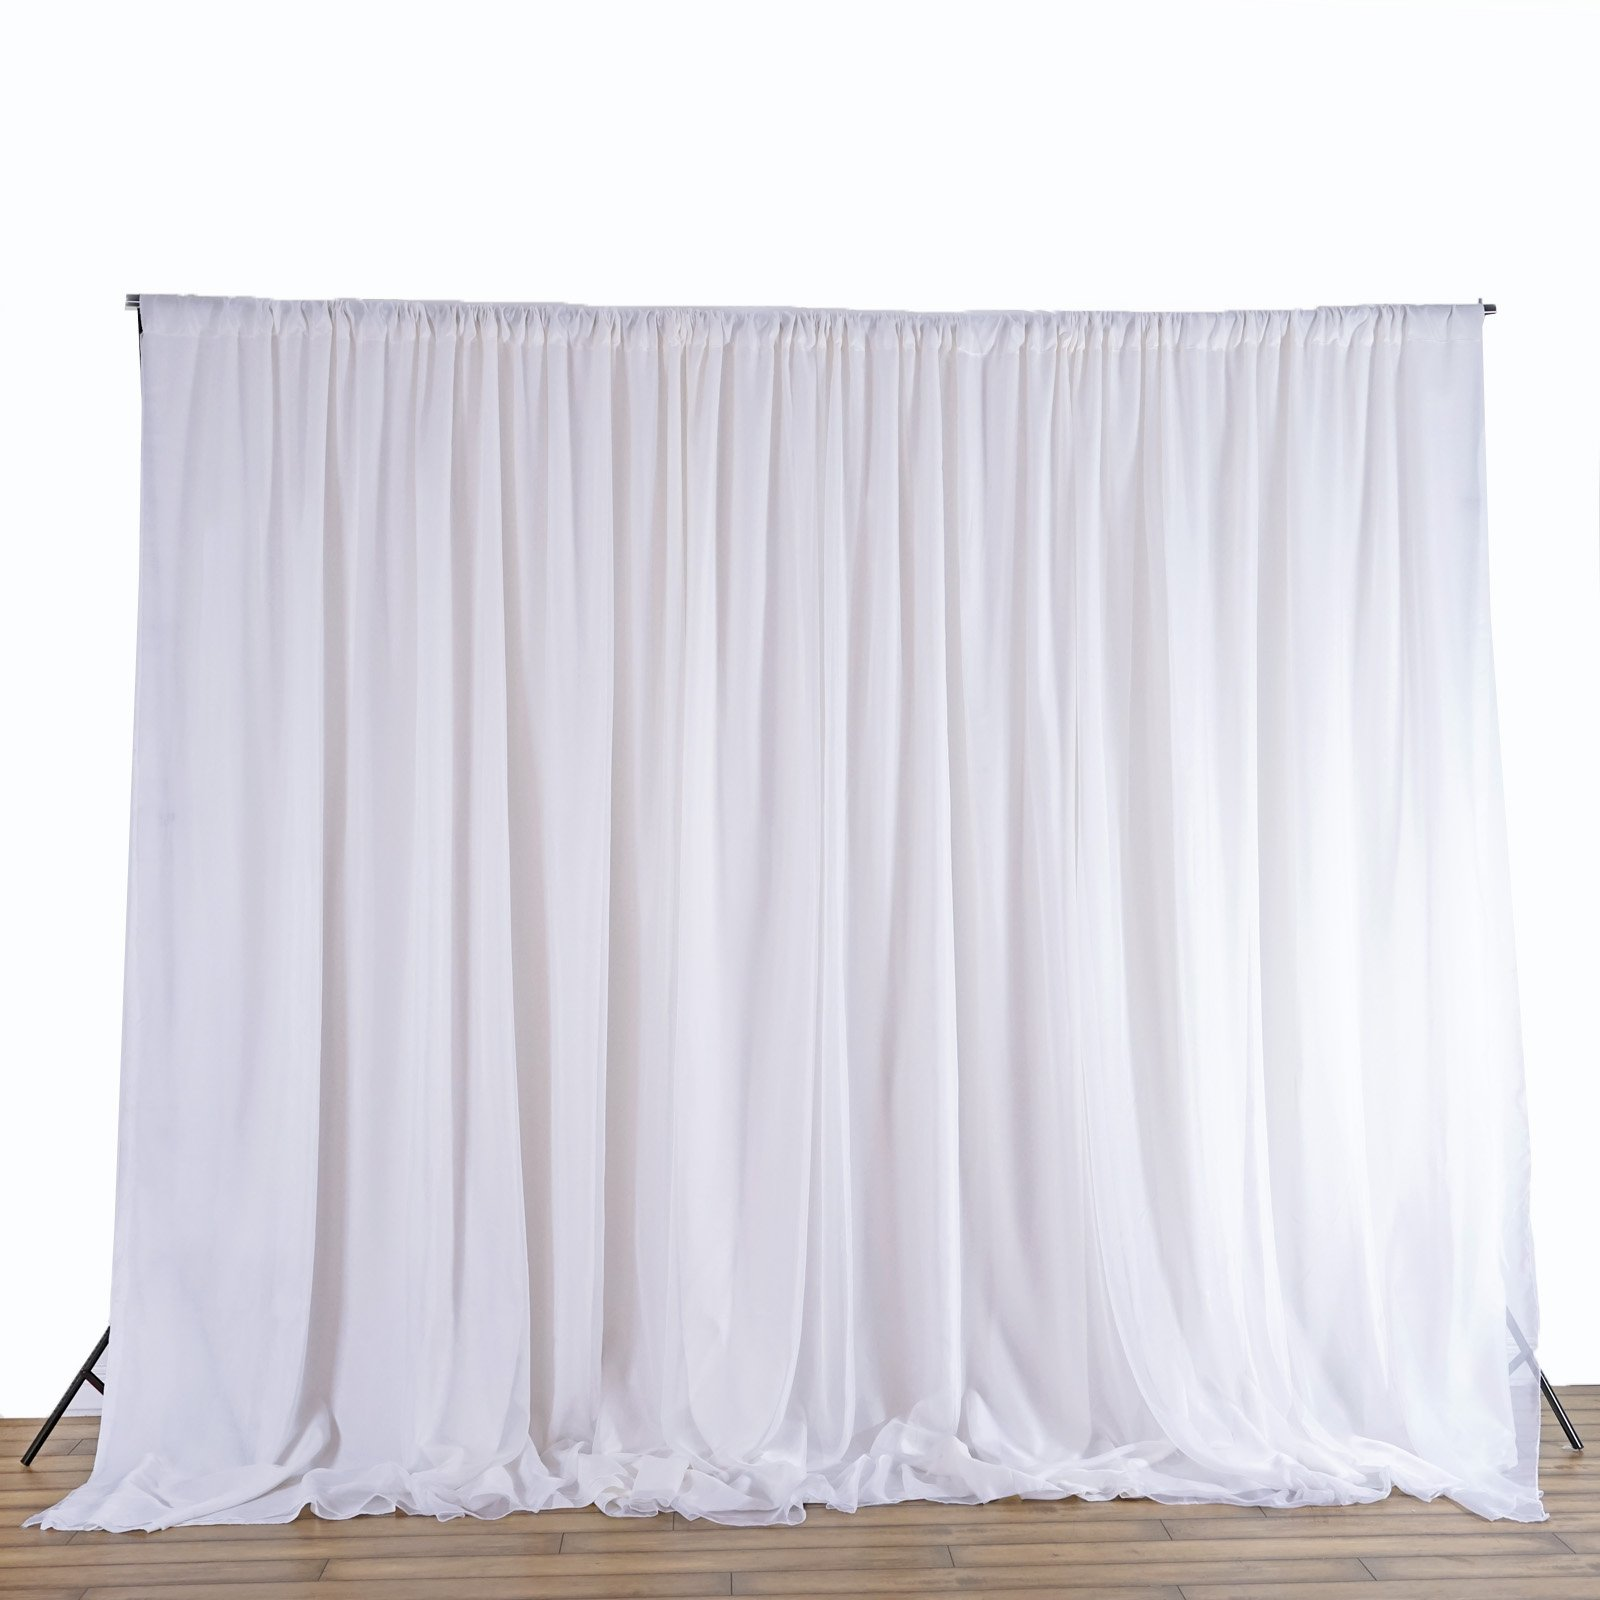 BalsaCircle 20 feet x 8 feet White Fabric Backdrop Drapes Curtains - Wedding Ceremony Event Party Photo Booth Home Windows by BalsaCircle